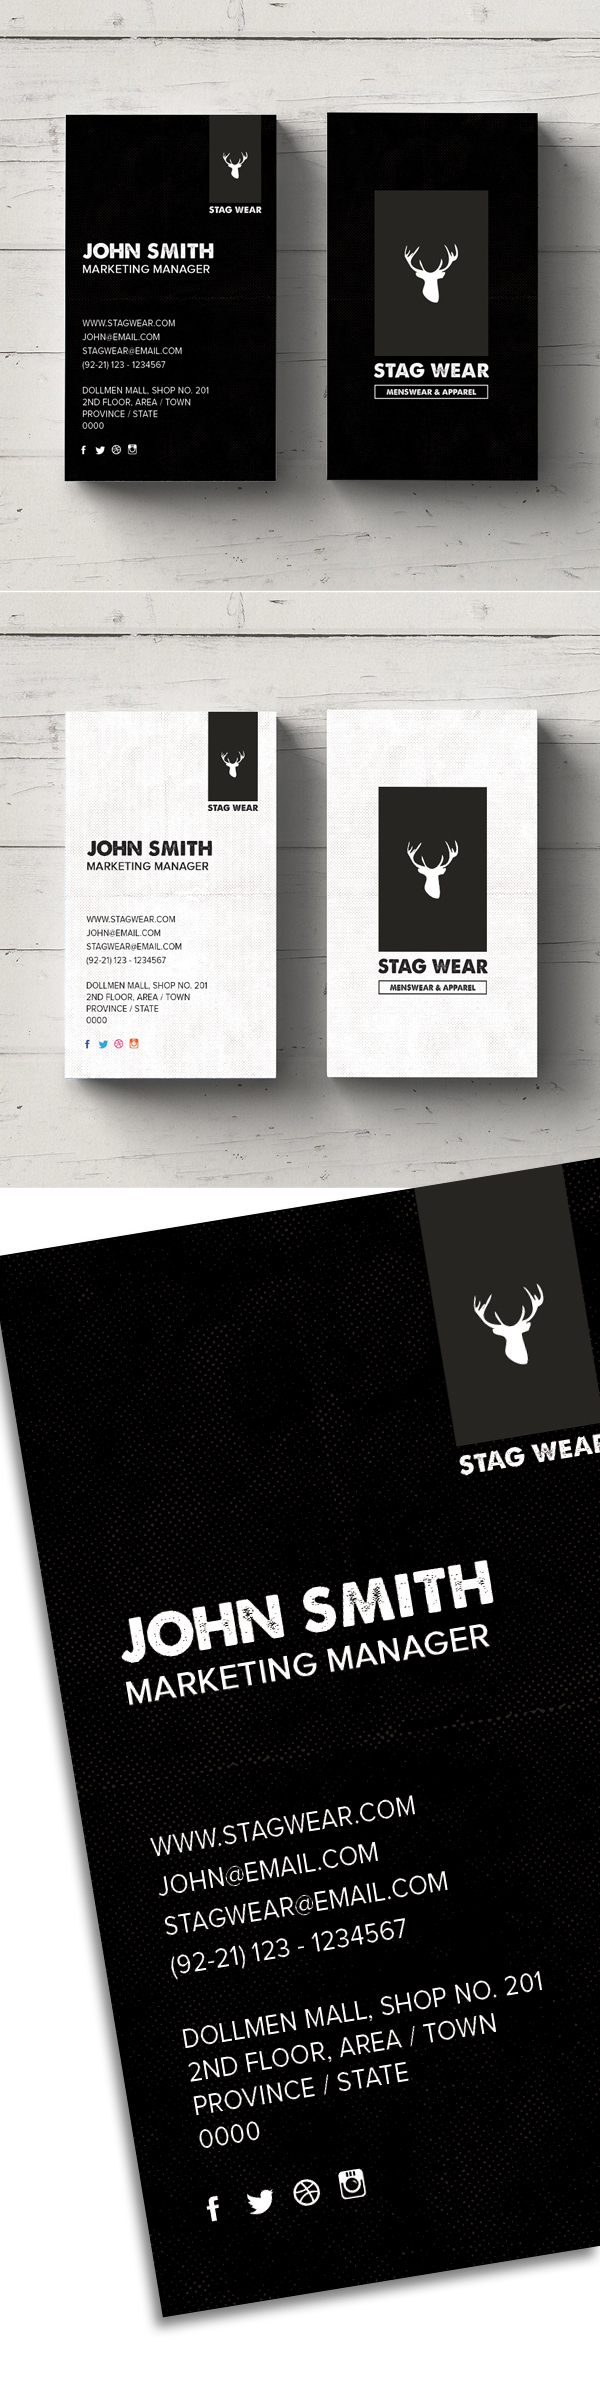 Freebie vertical business card psd template freebies graphic free vertical business card psd template accmission Images